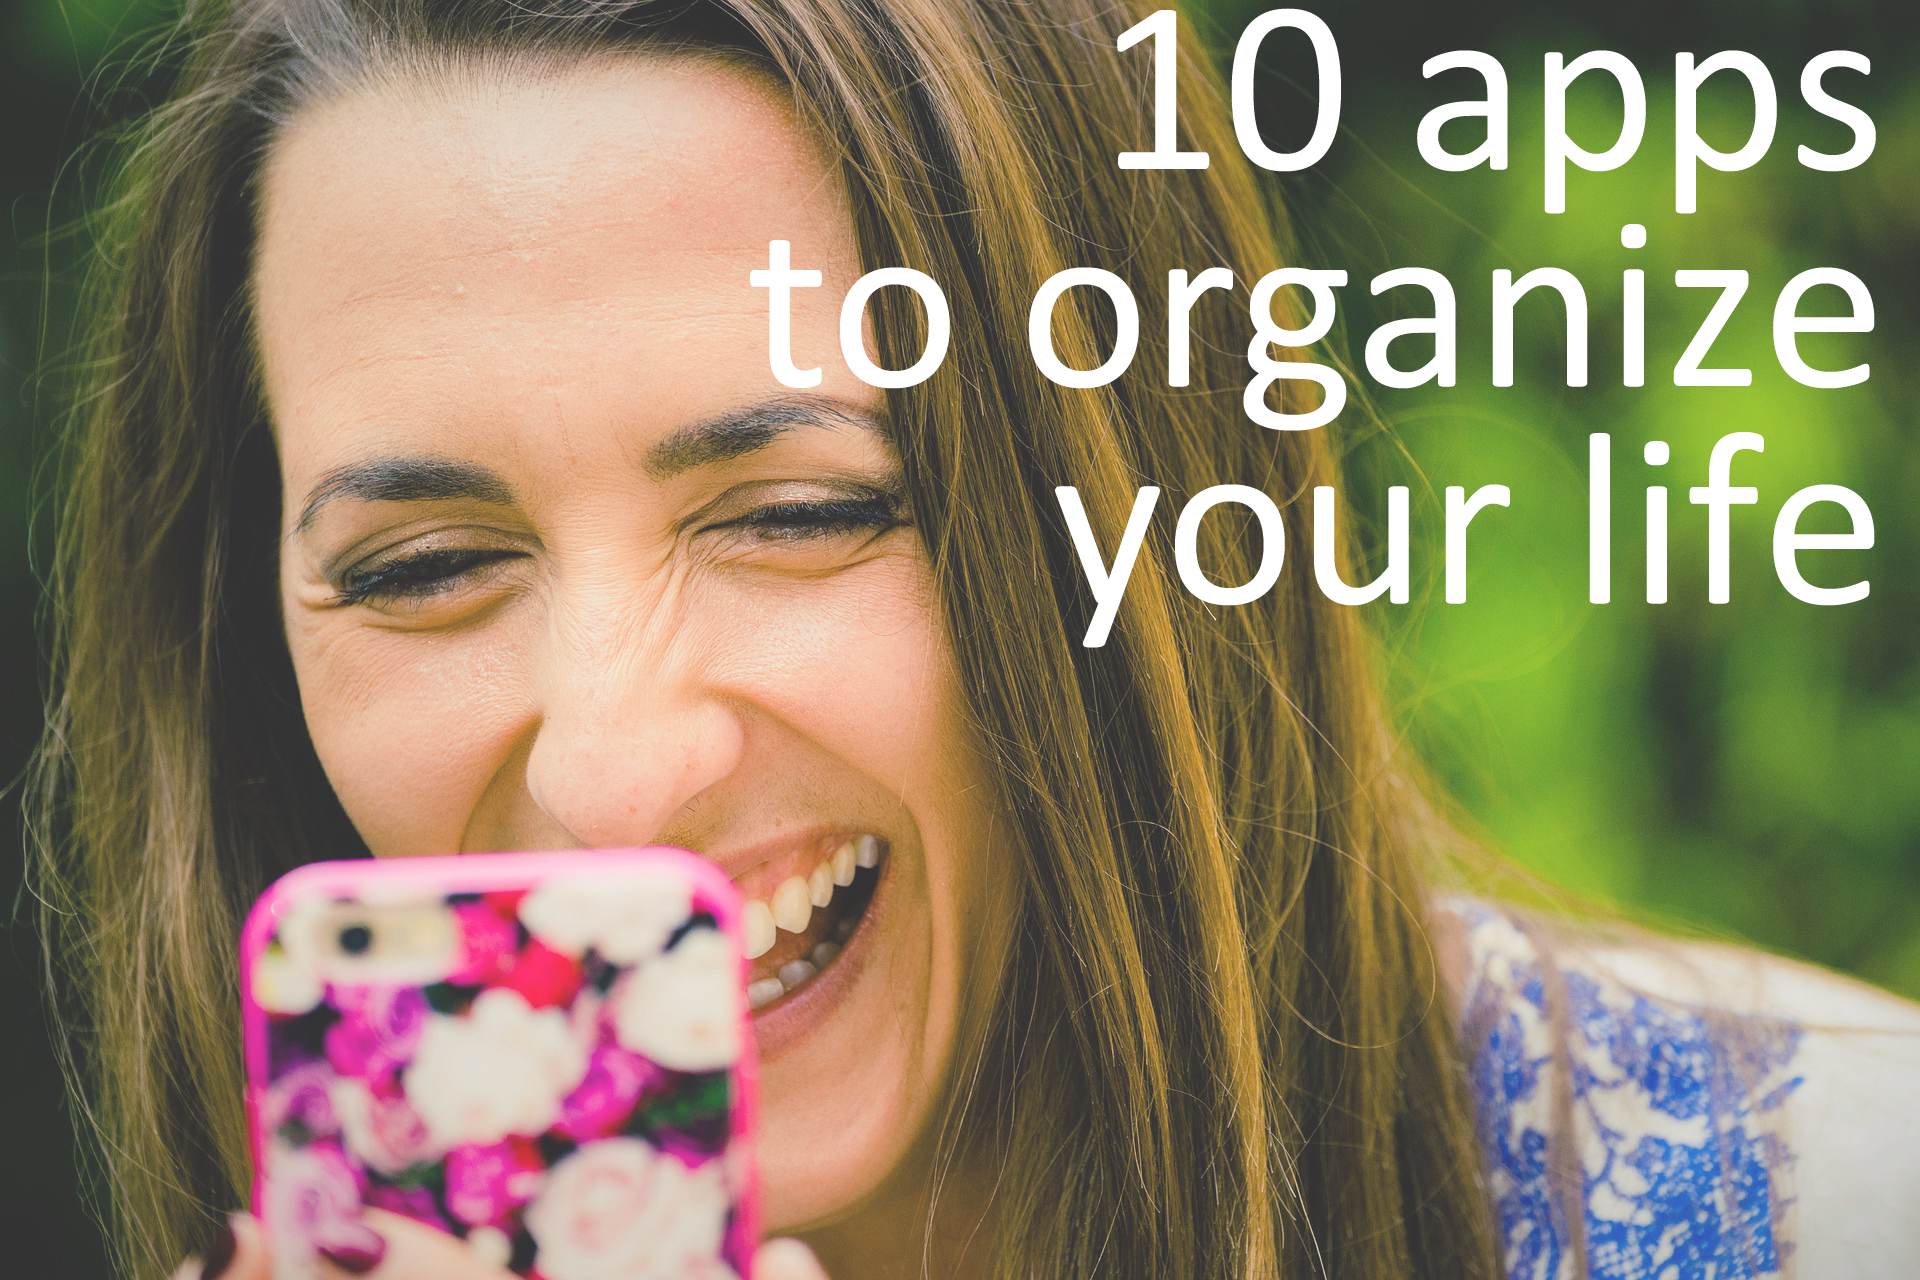 10 apos to organize your life